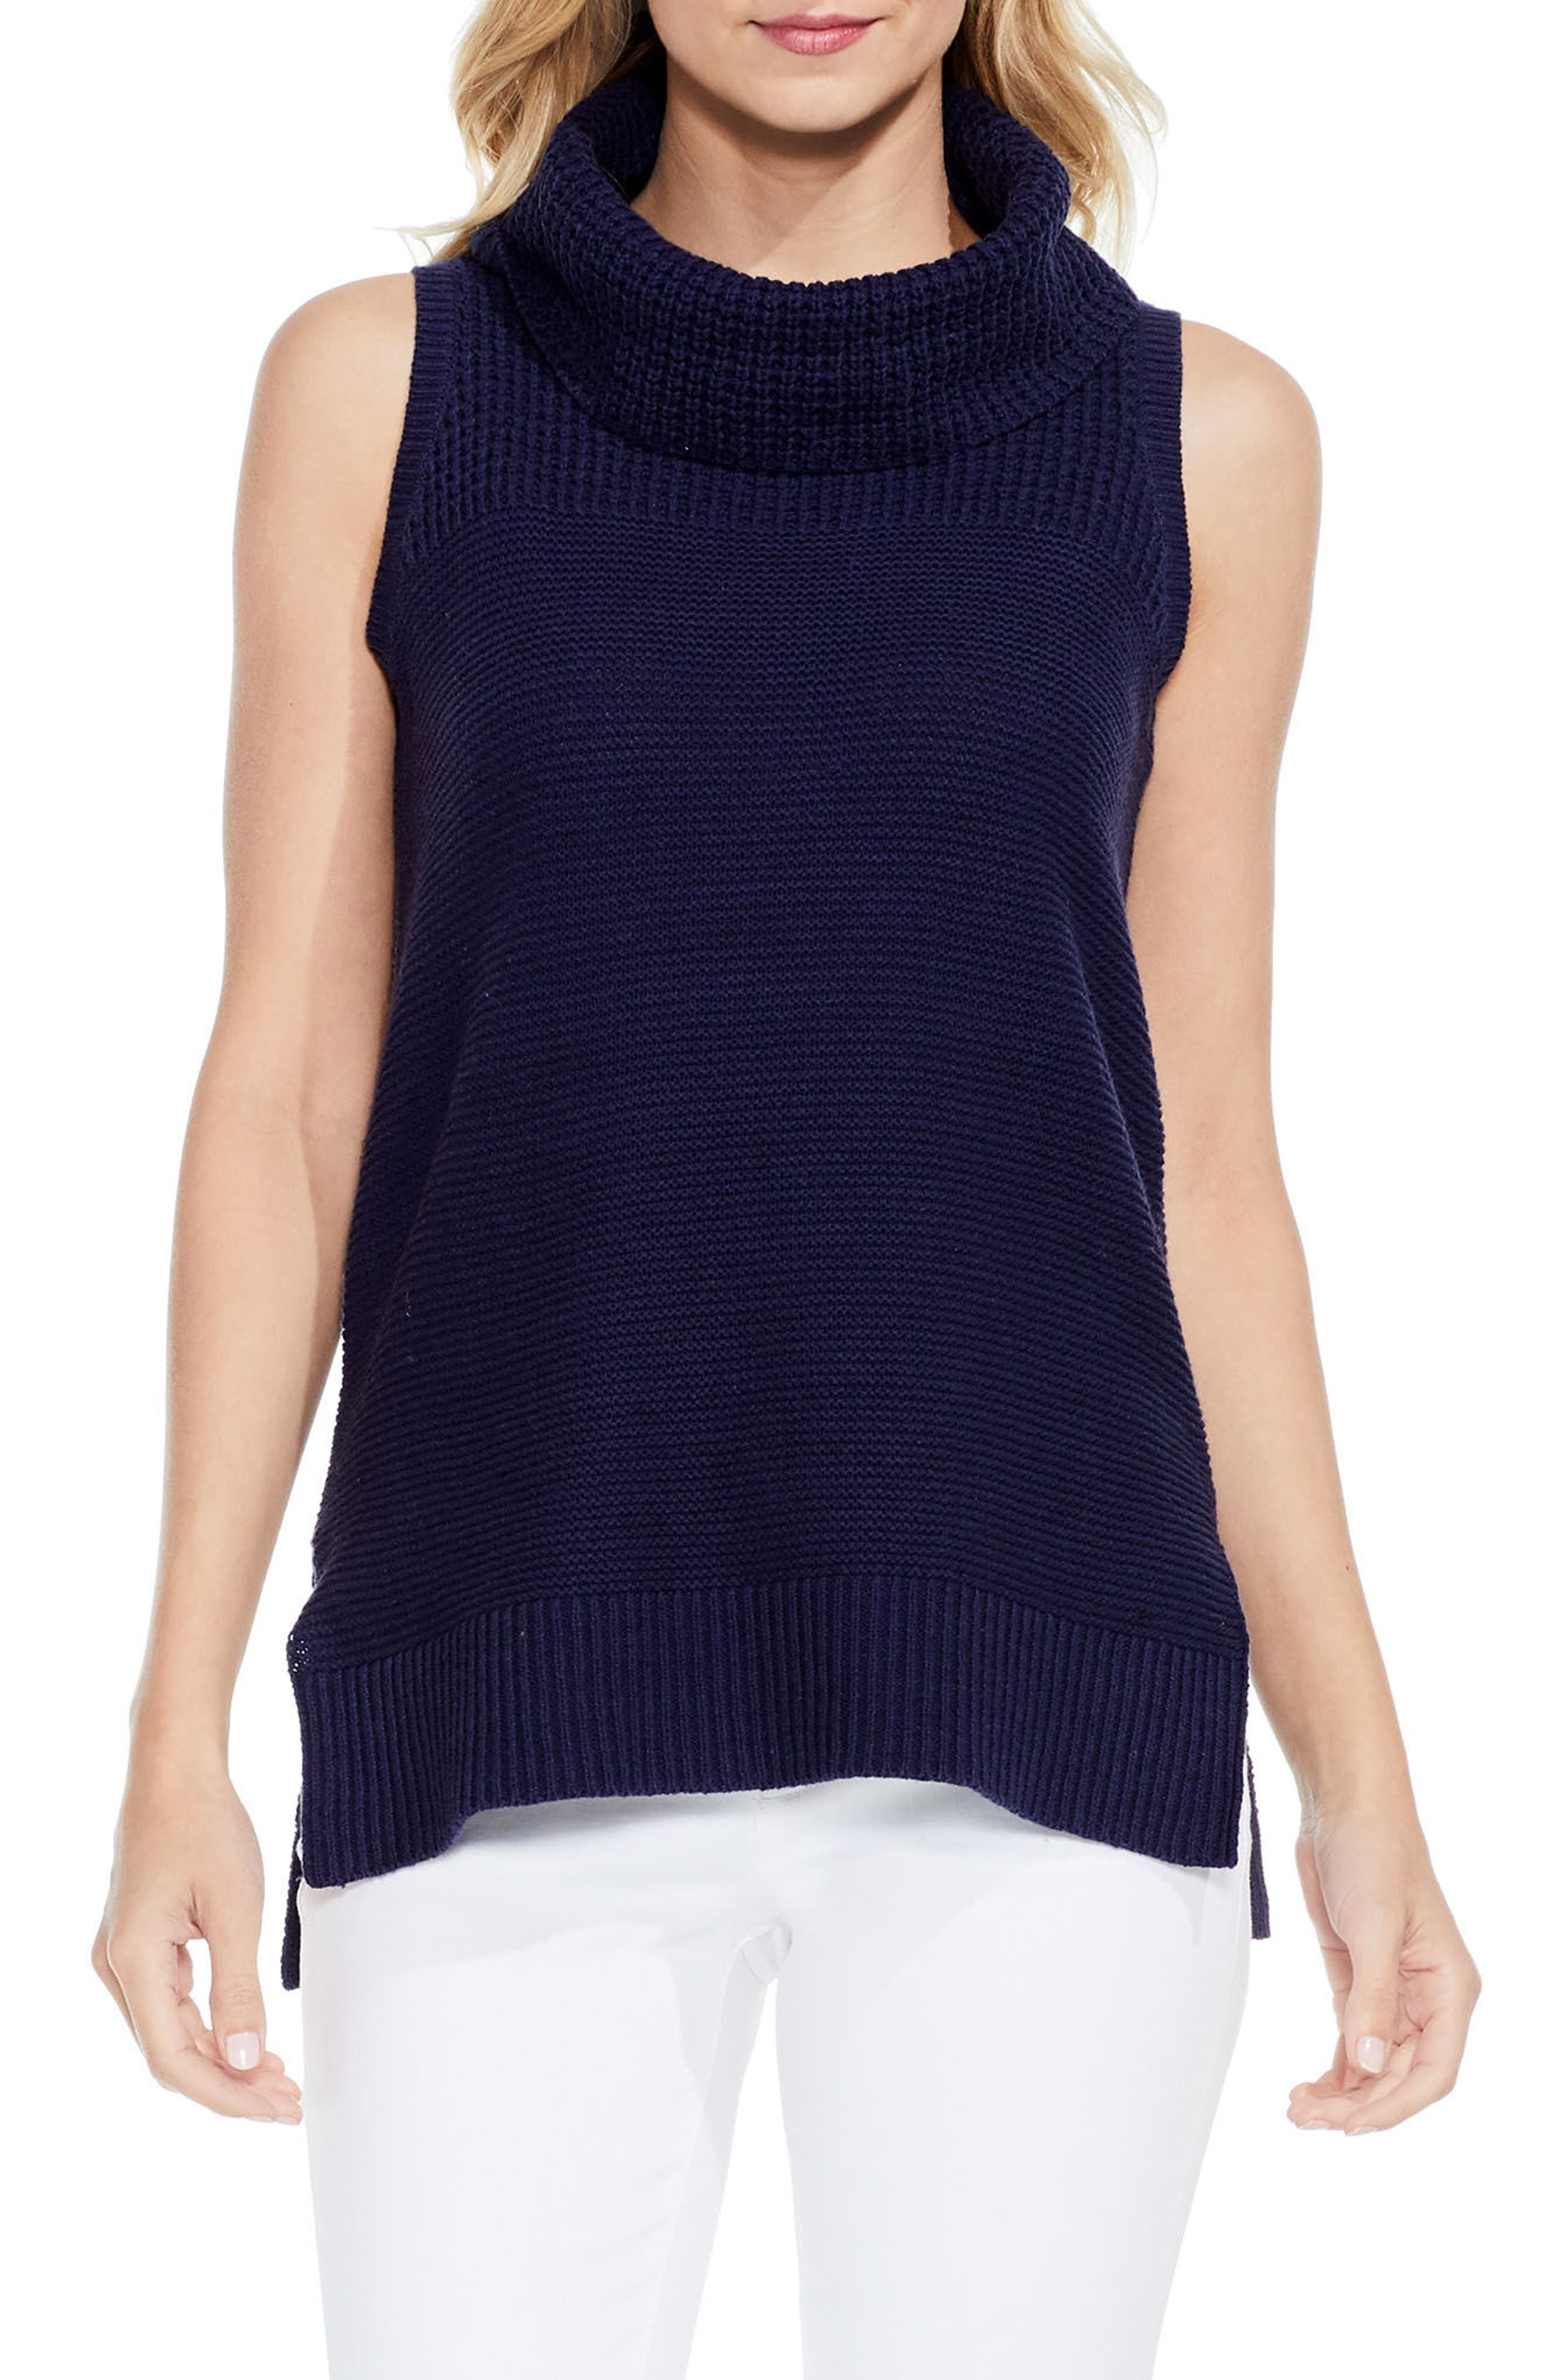 Alternate Image 1 Selected - Two by Vince Camuto Sleeveless Cowl Neck Sweater